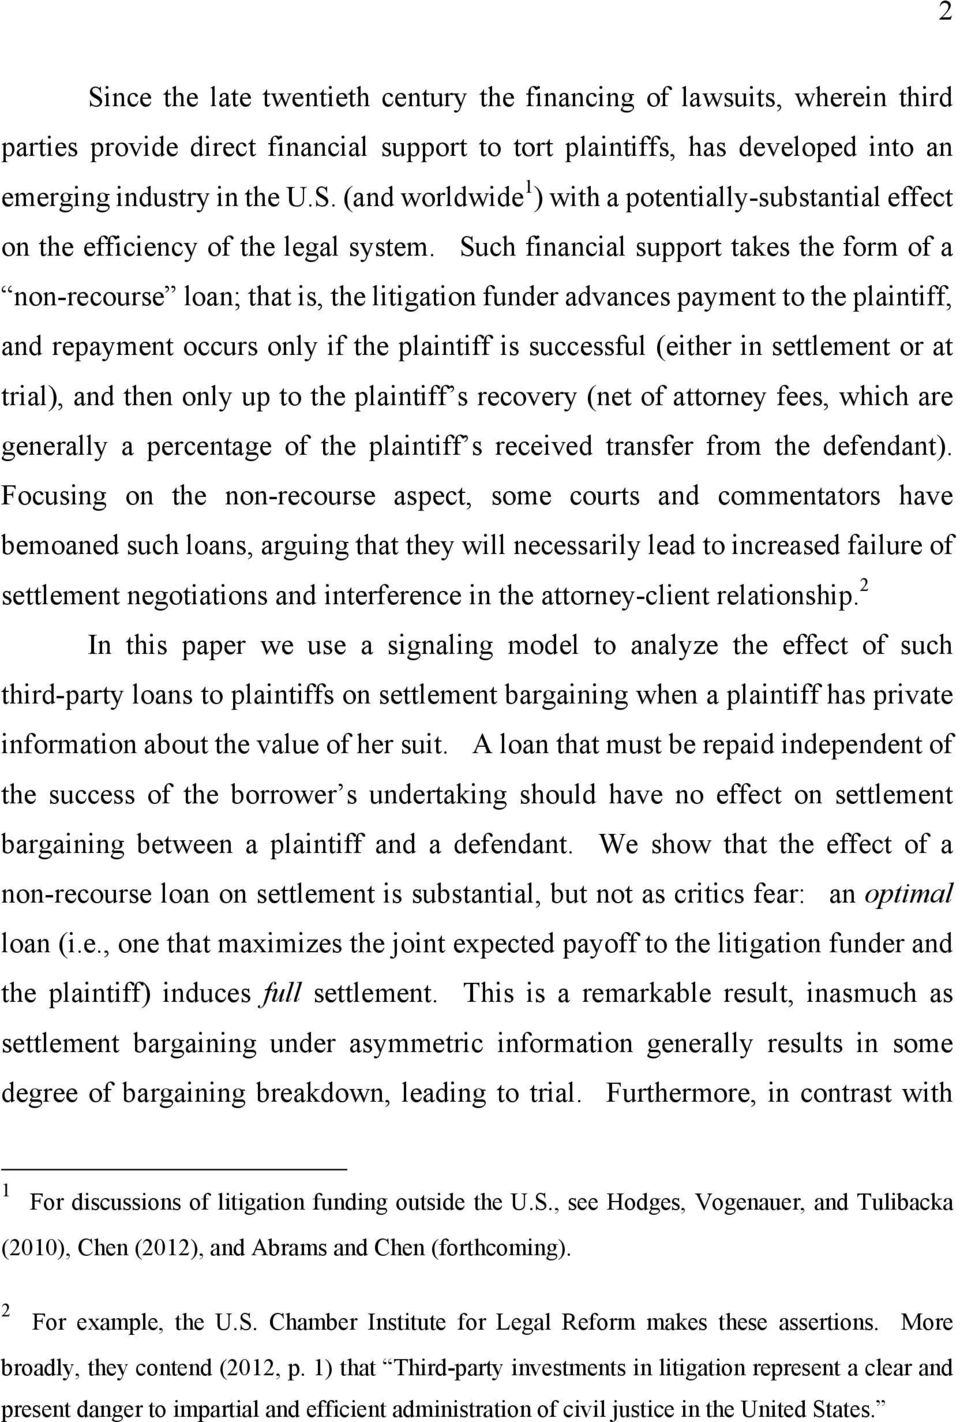 settlement or at trial), and then only up to the plaintiff s recovery (net of attorney fees, which are generally a percentage of the plaintiff s received transfer from the defendant).